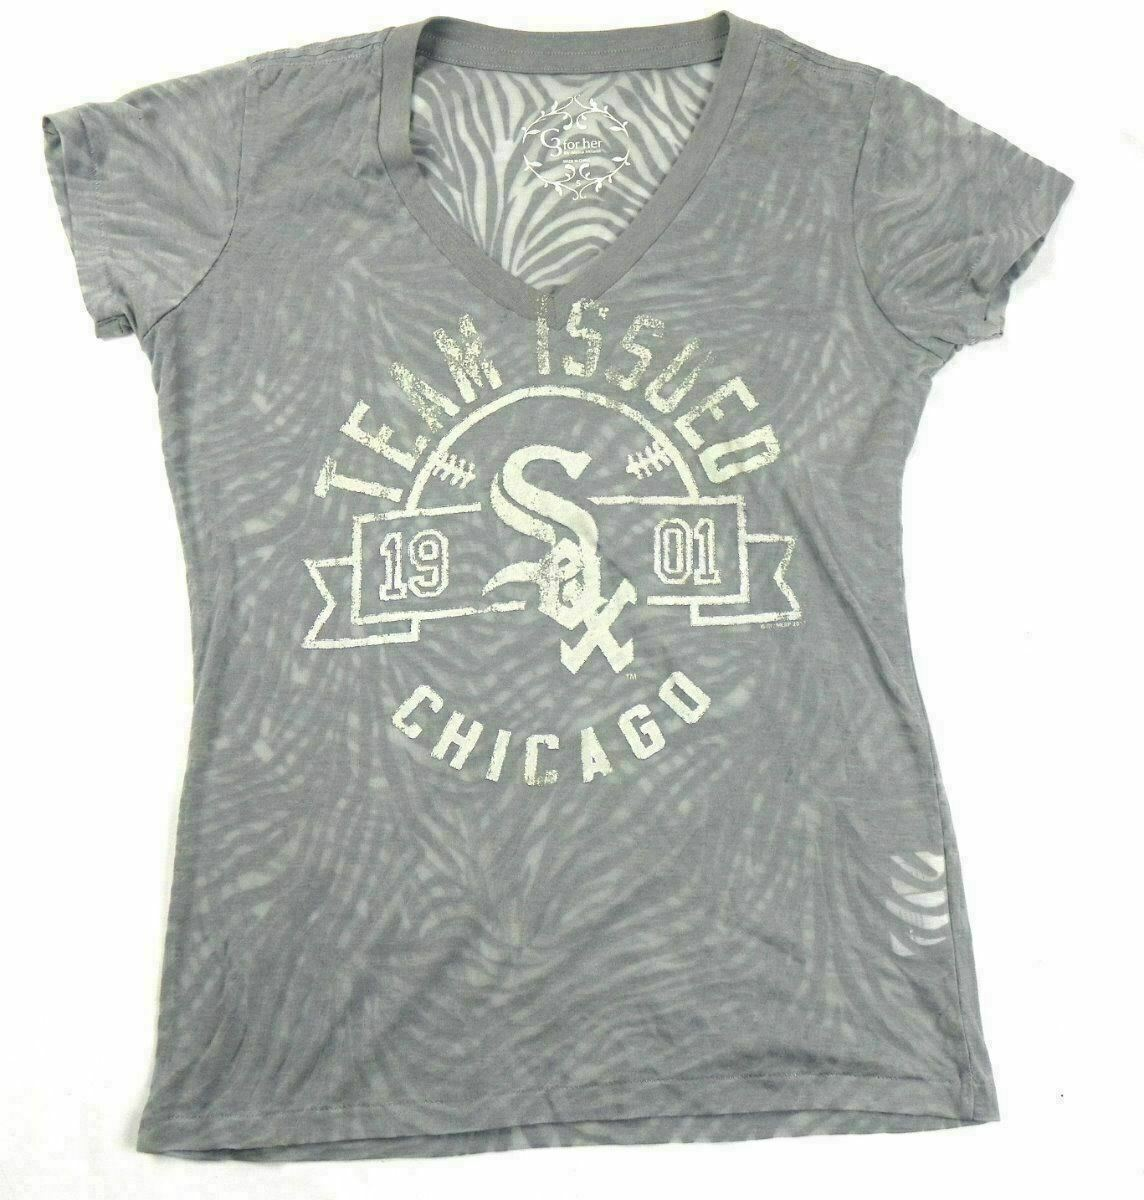 Ladies Small Chicago White Sox Shirt G3 for Her Team Issued Burnout Women's Tee